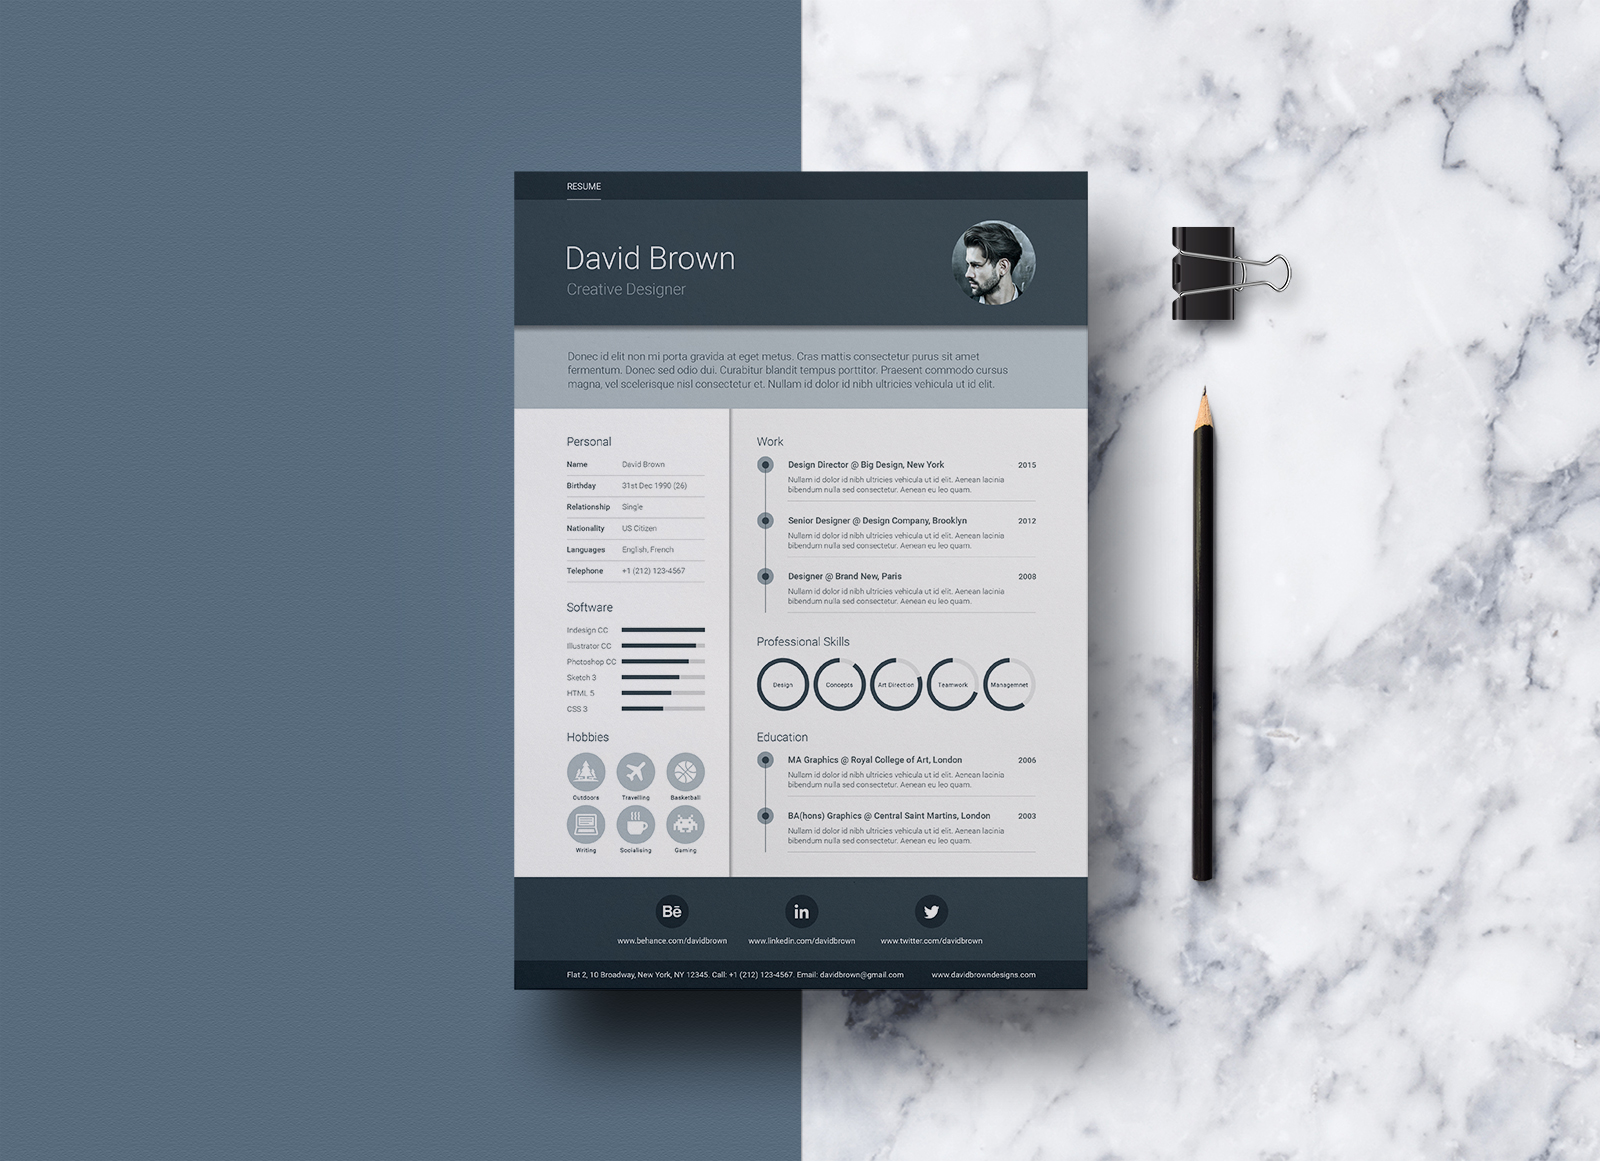 free material resume design template in good job application and sample format word Resume Material Design Resume Template Free